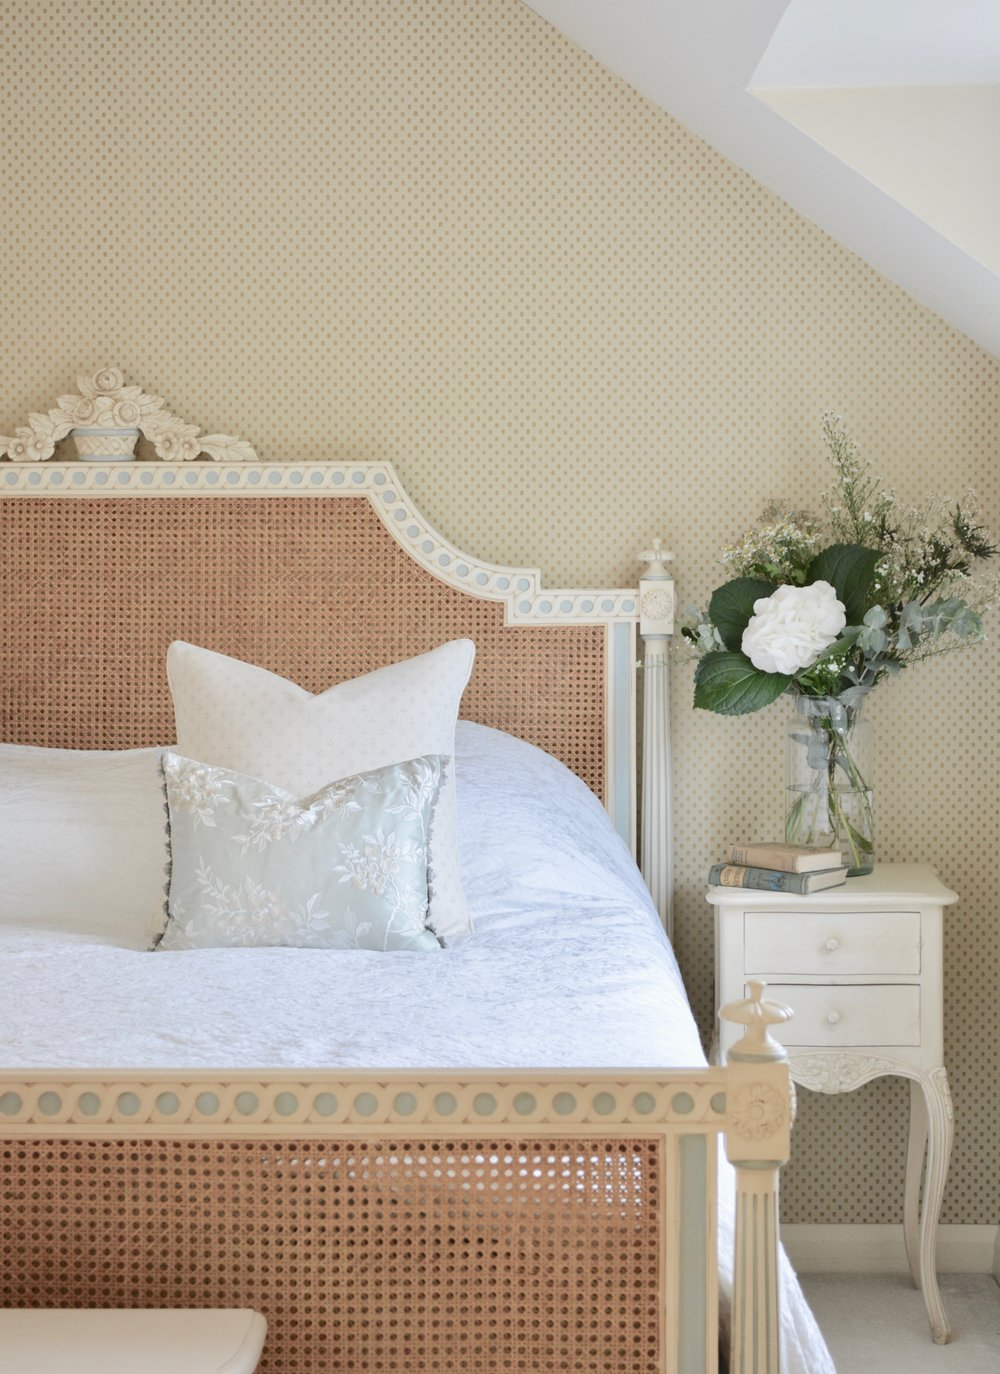 Country Cottage Bedroom Designed by Hannah Llewelyn Interior Design www.hlinteriors.co.uk 2.jpg